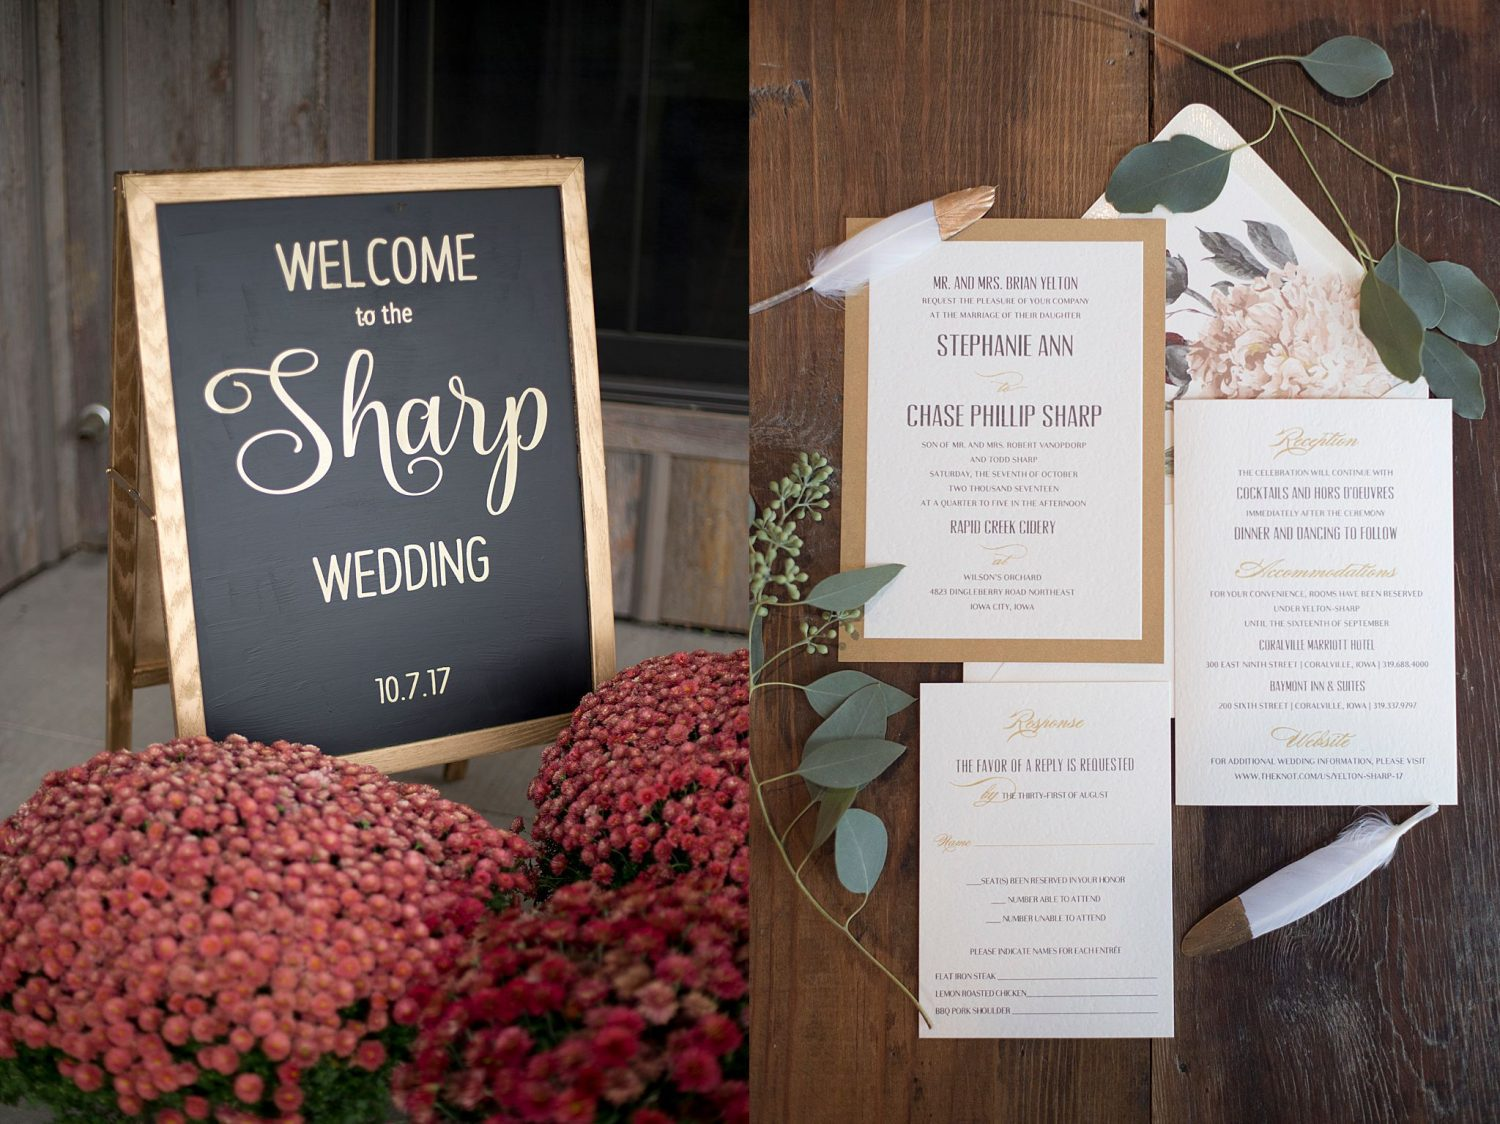 Chalkboard welcome sign with gold lettering, surrounded by burgundy mums and a flatlay of invitation sweet with greenery.